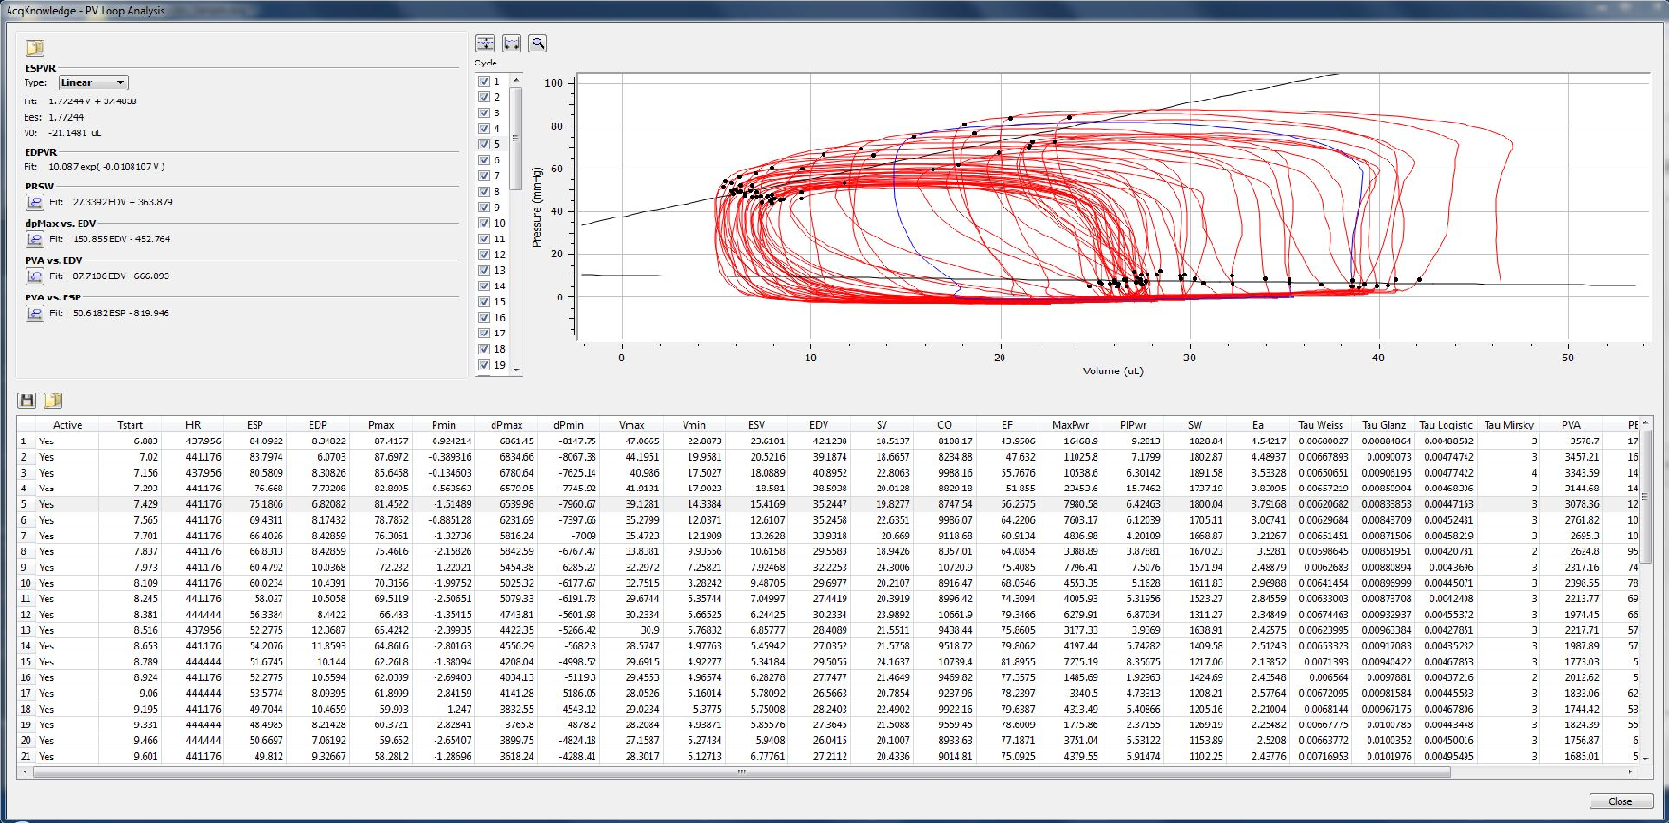 PV Loop Analysis, Isolated Lung Studies, Invitro Phramacology